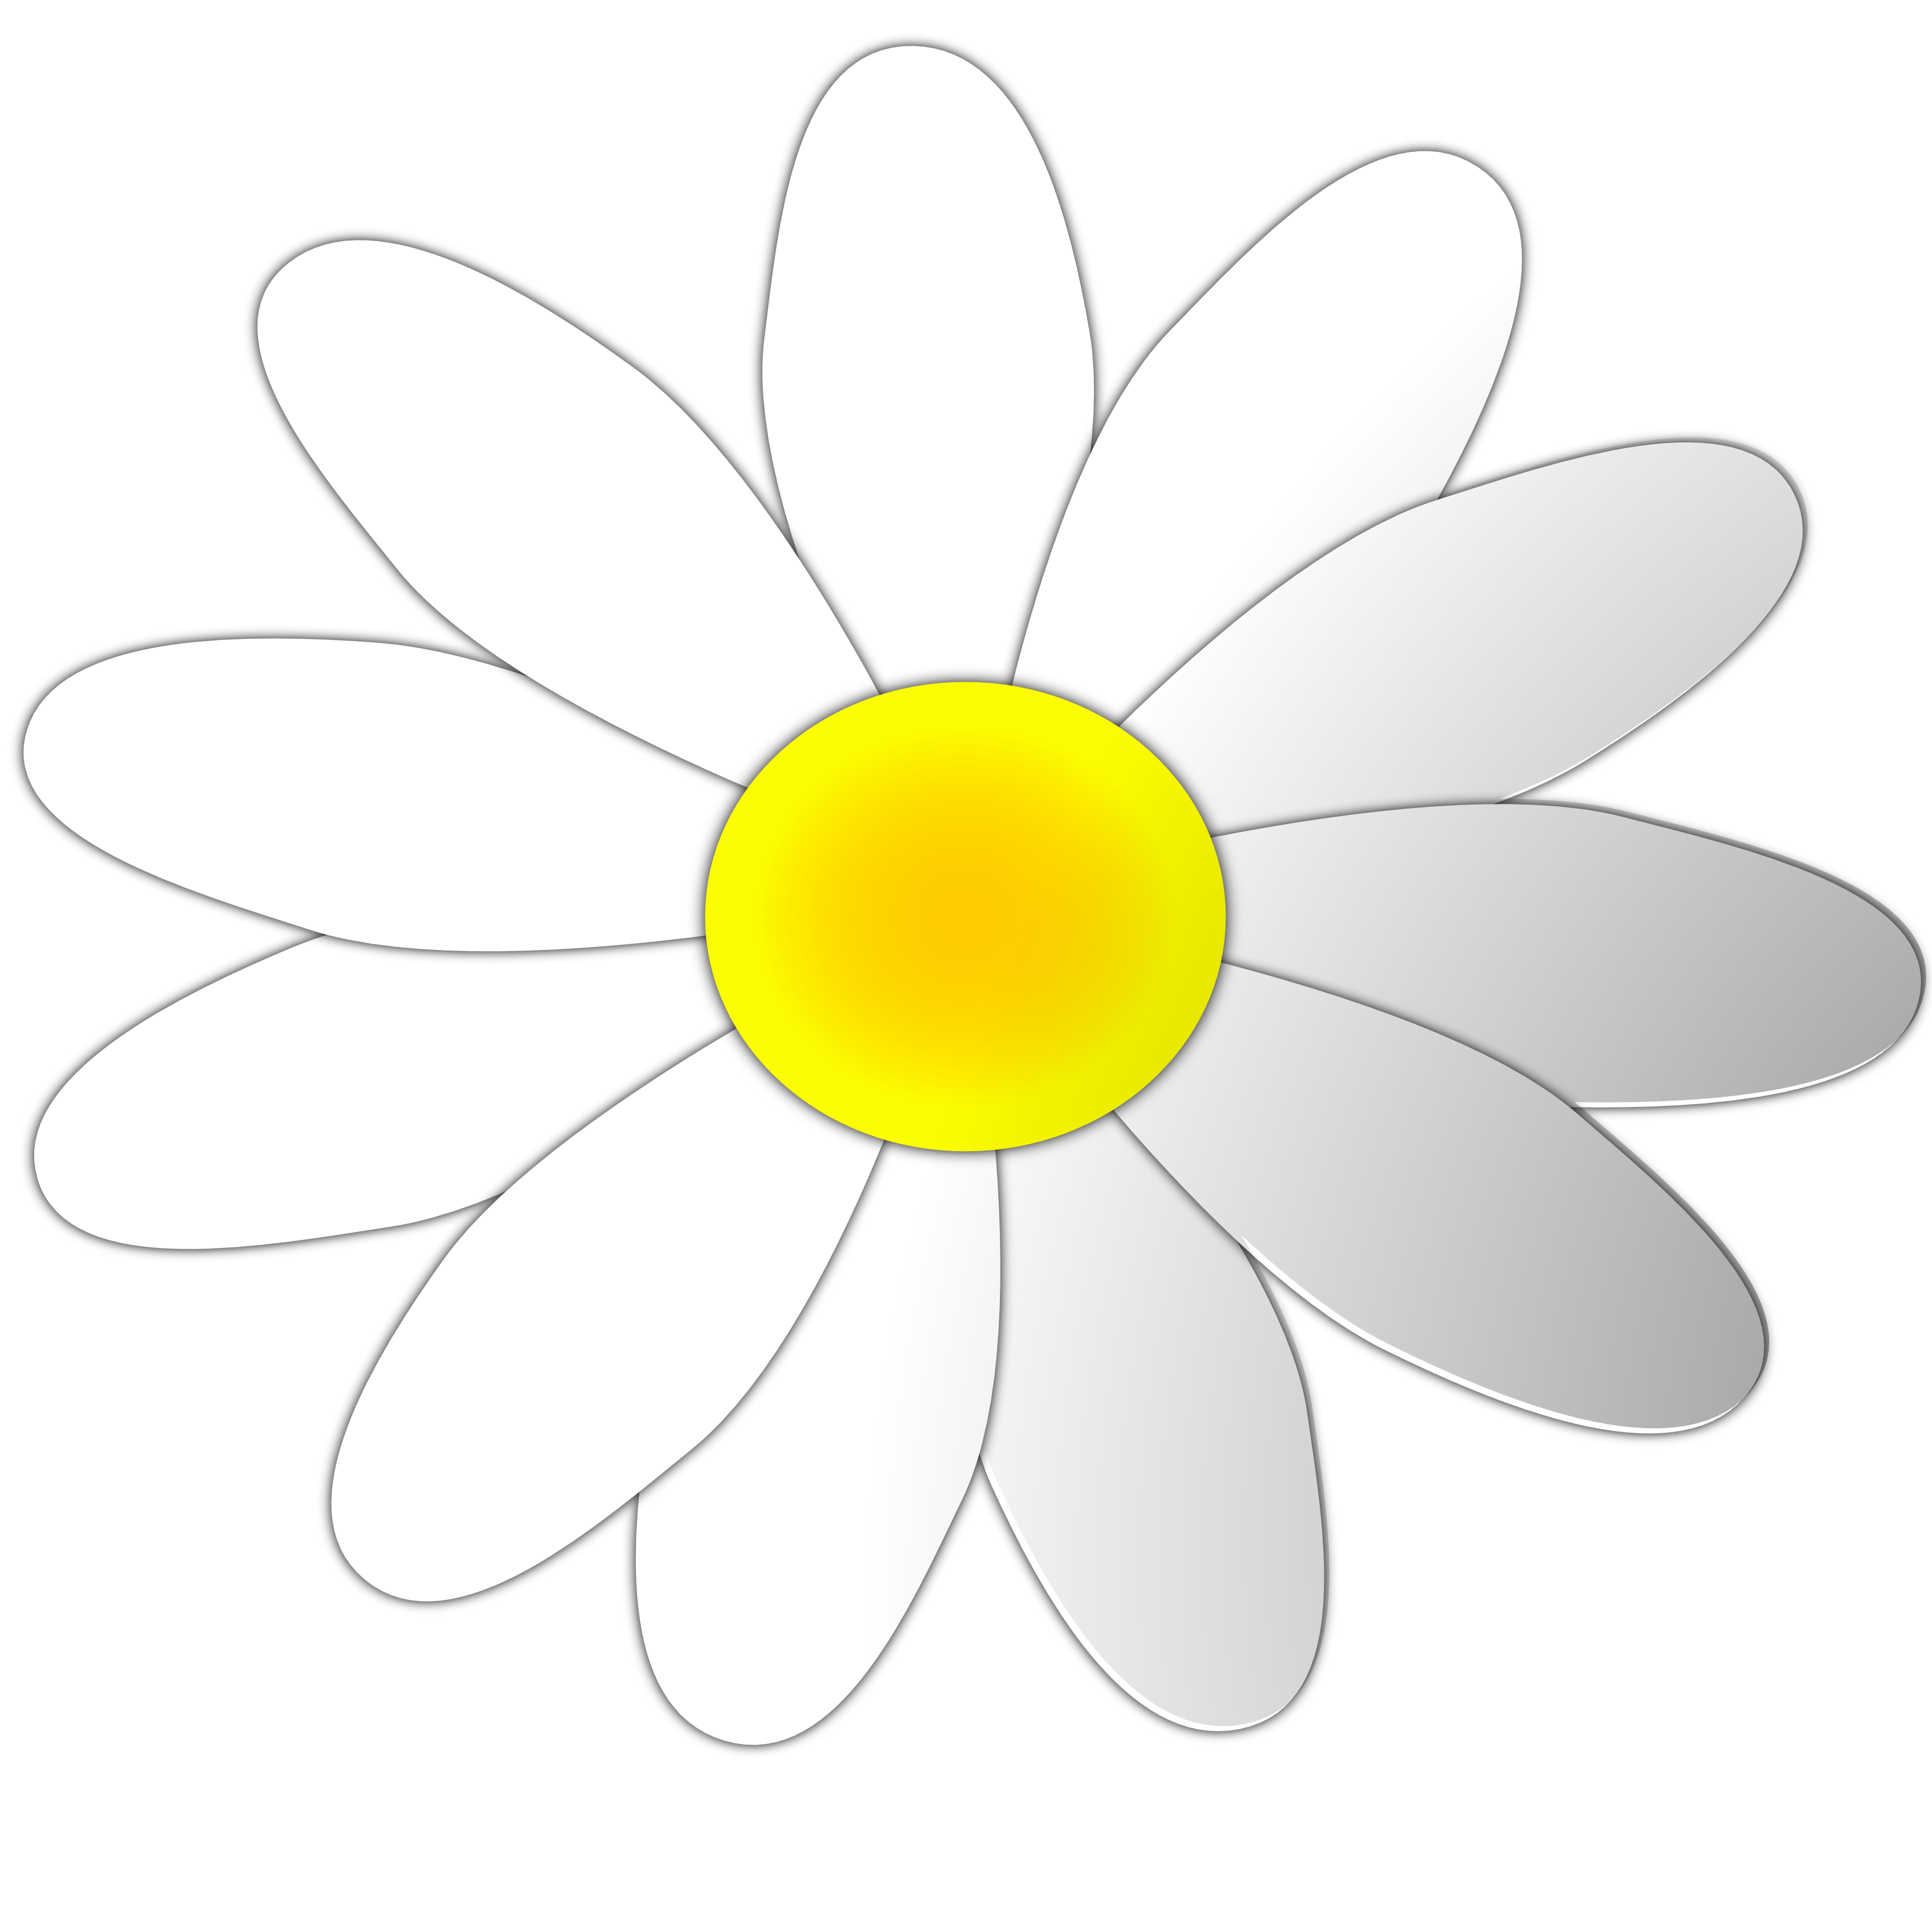 White daisy flower clipart image black and white download Free Free Daisy Images, Download Free Clip Art, Free Clip ... image black and white download